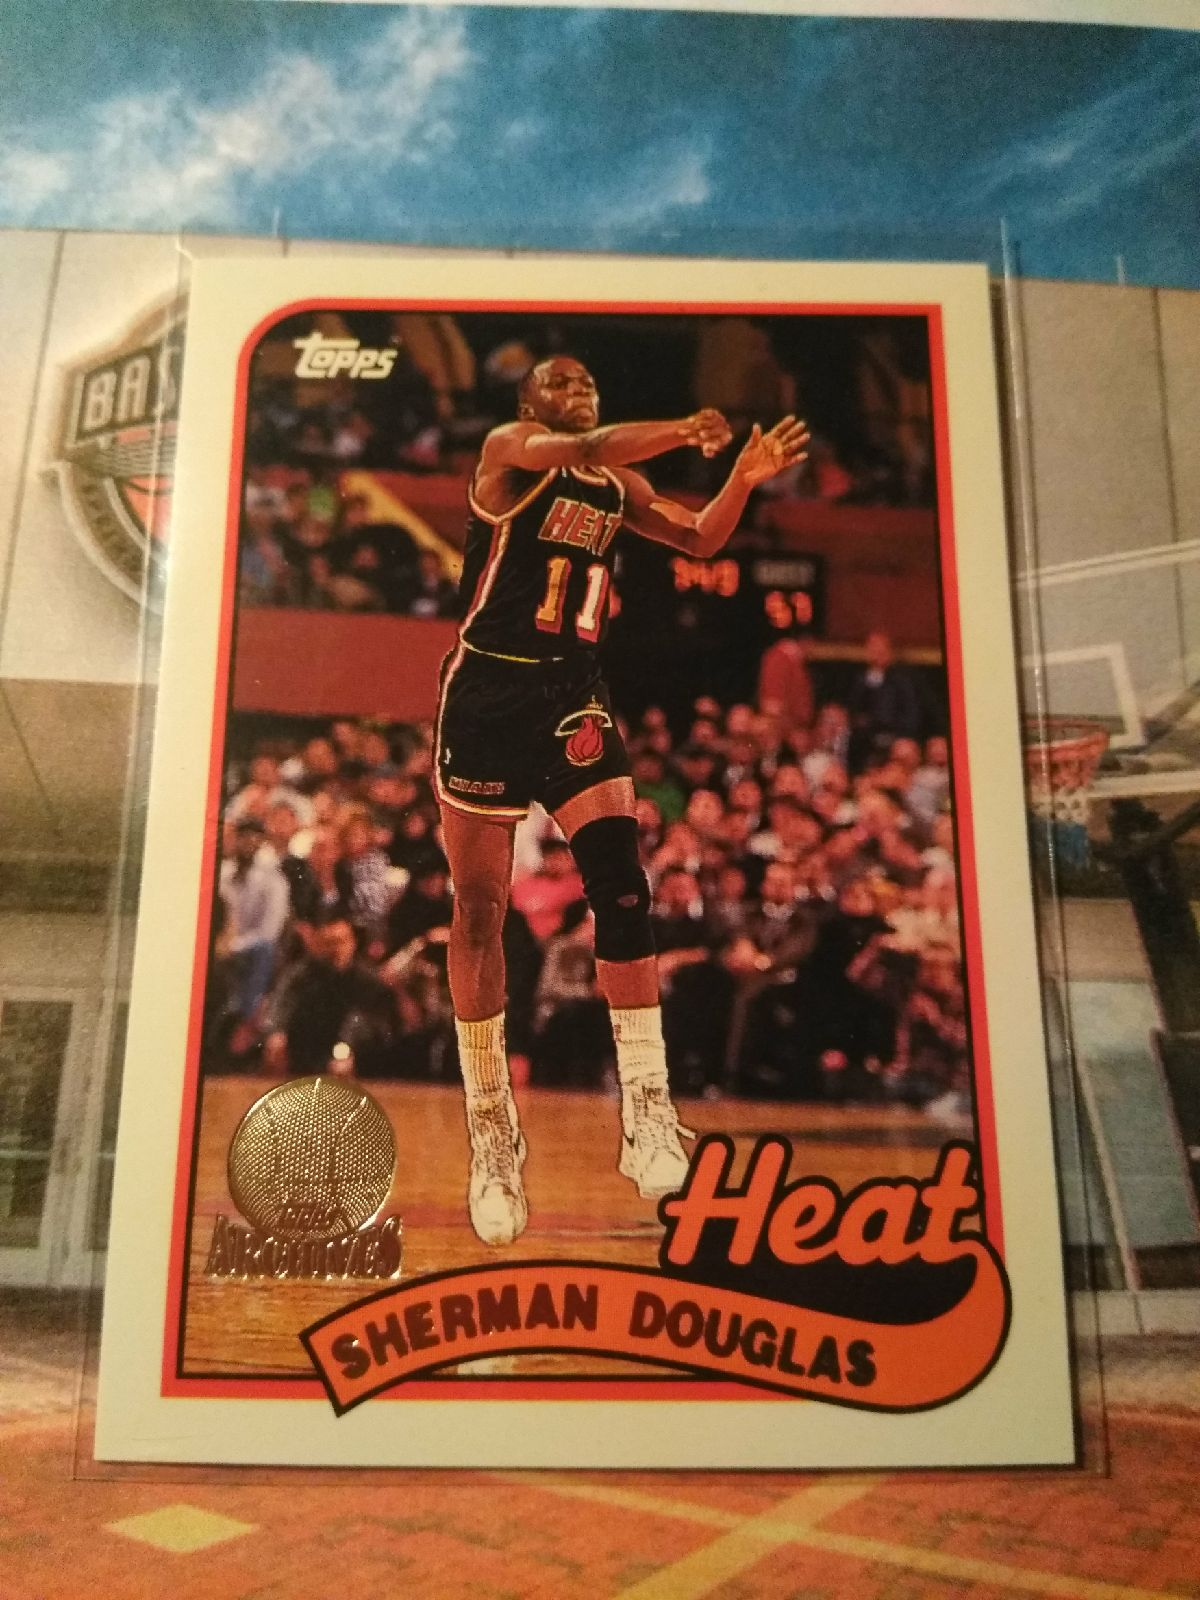 Sherman Douglas Auto and SP Gold Mercari BUY & SELL THINGS YOU LOVE